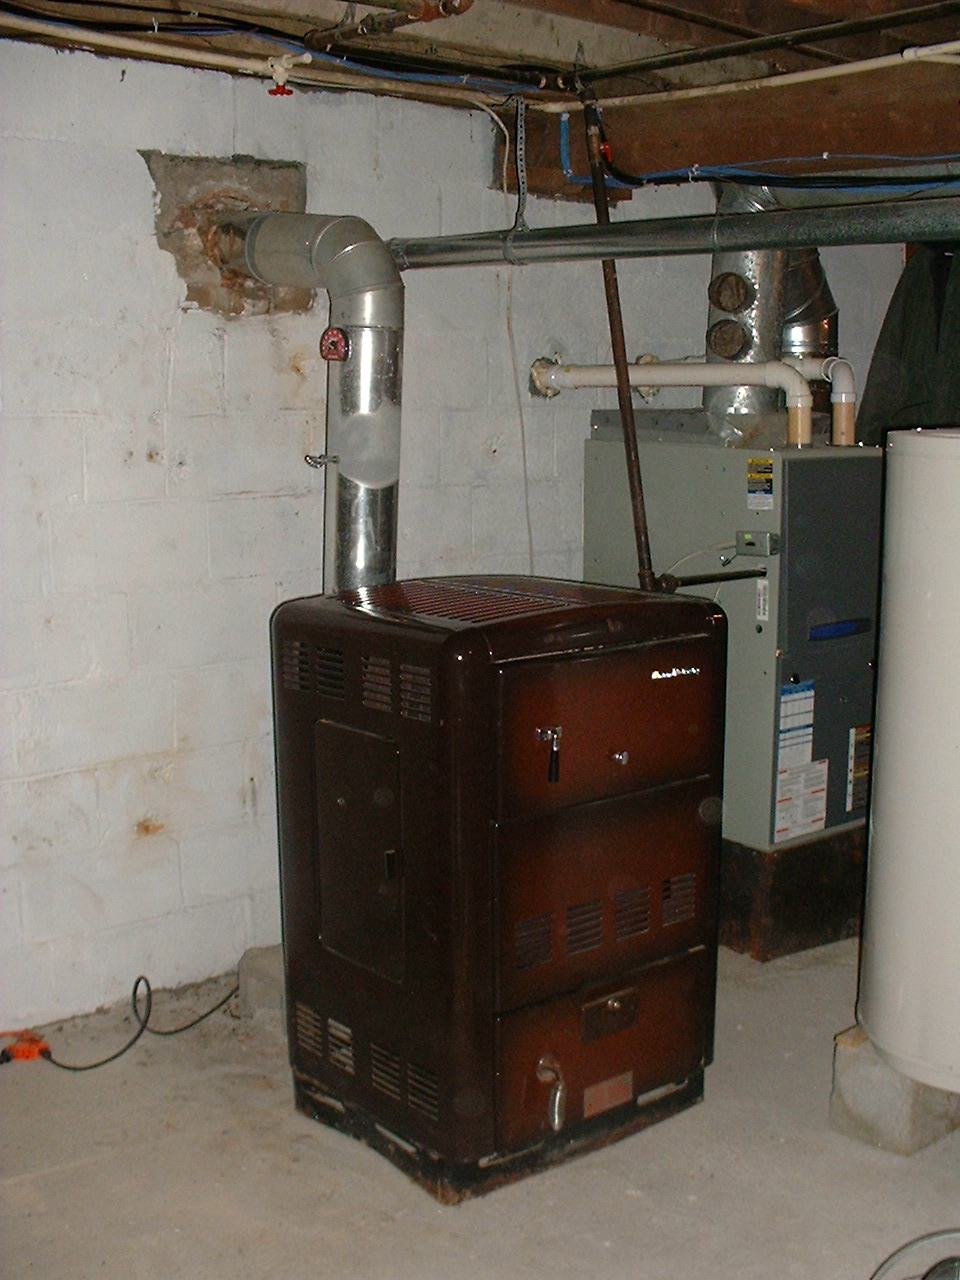 2006-10-26-Locke_Stove_Company_400C-Warm_Mornings-Coal_Burner-Wide-1.JPG